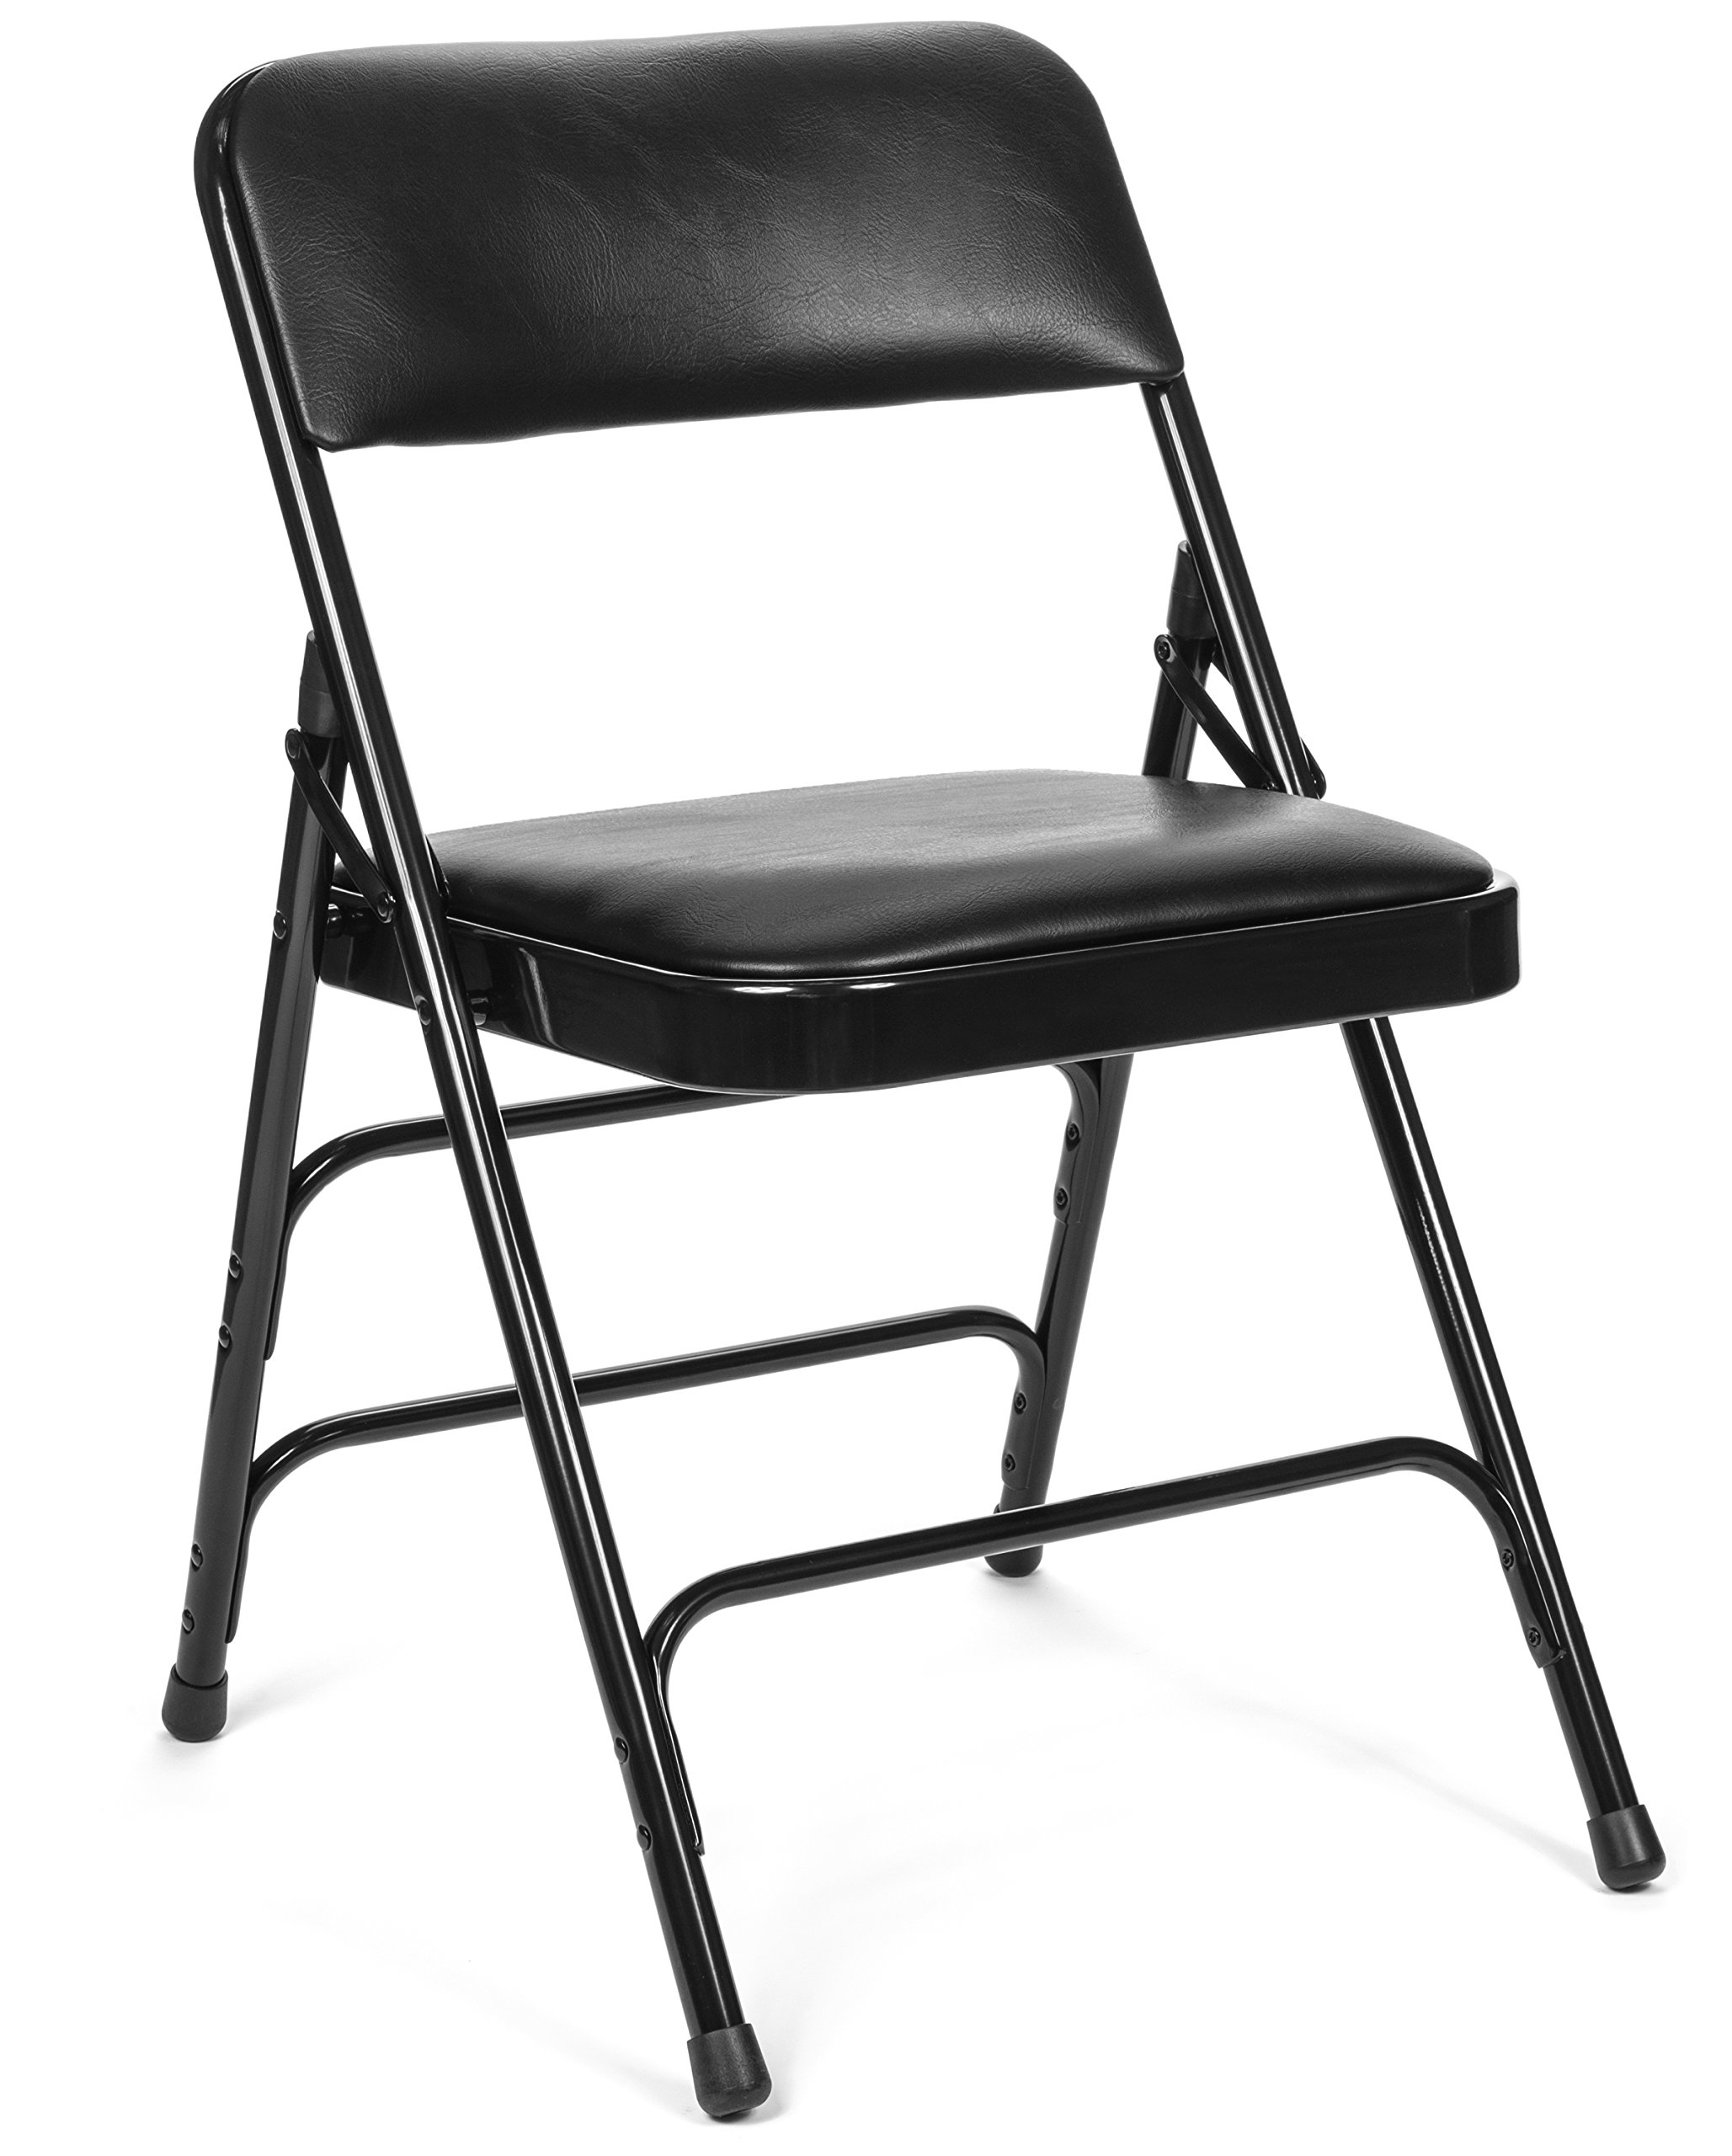 Commercial Vinyl Padded Folding Chair, Triple Cross Bracing, Quad Hinging, 300 lb Tested, 4 pack (Black)